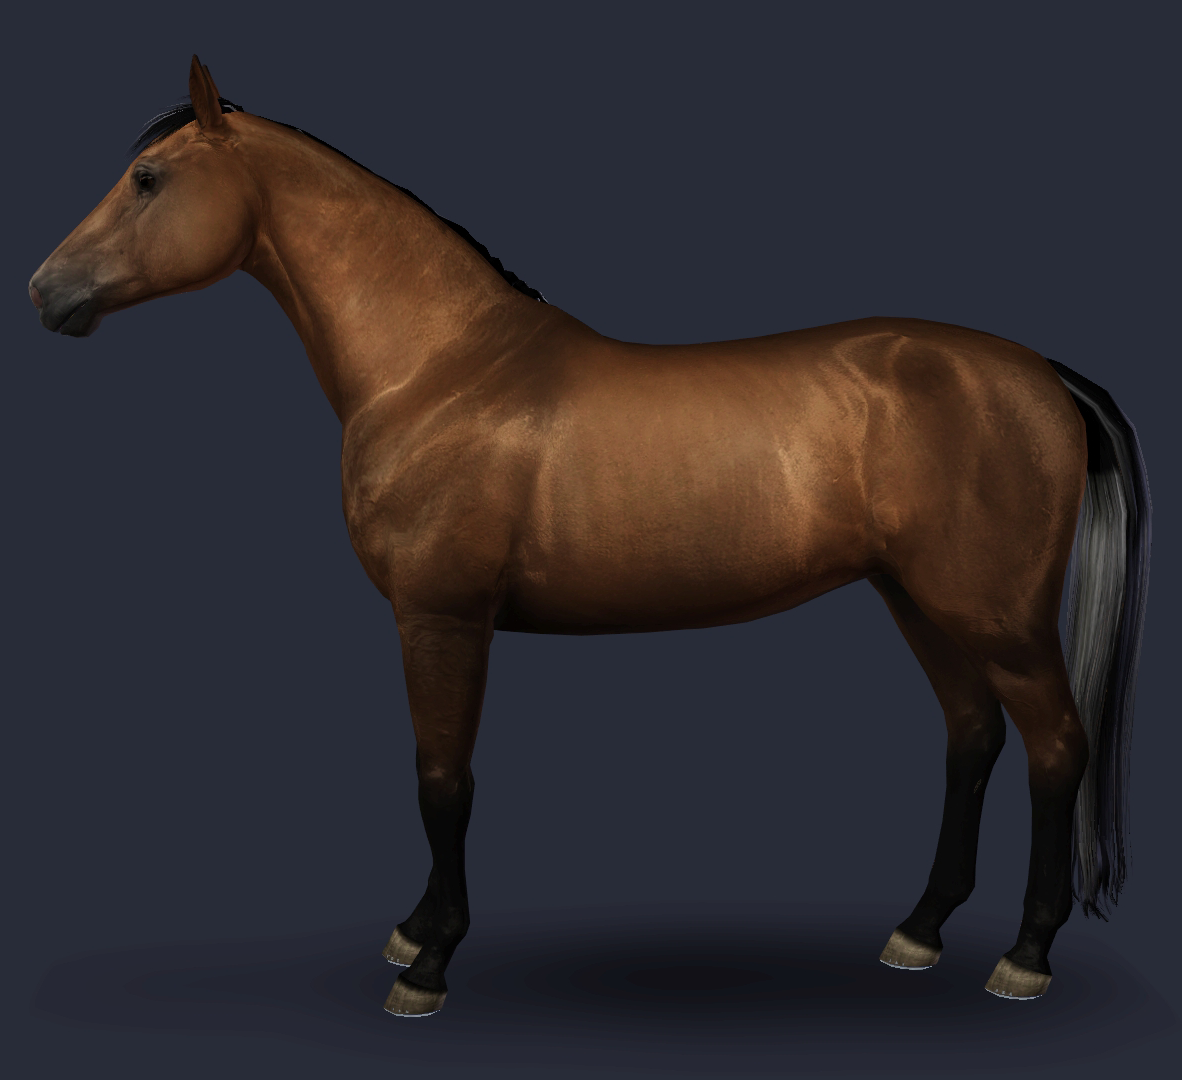 206 best images about sims 3 on pinterest dots sims 4 and warm - Find This Pin And More On Sims 3 Cc Horse Sliders